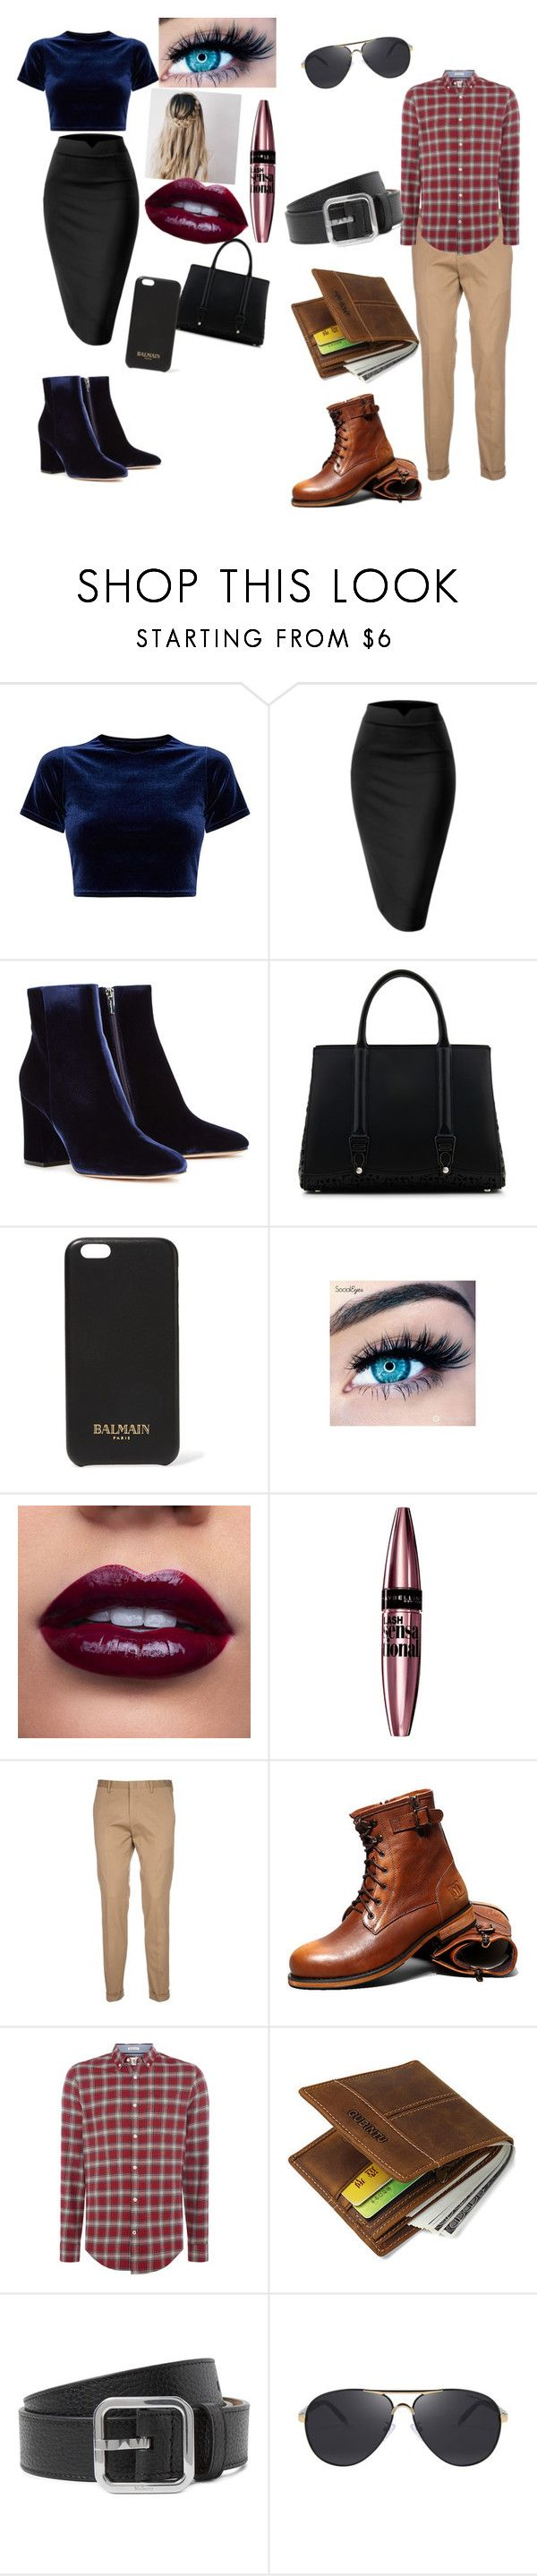 """""""The Night Out"""" by melissa-kalay ❤ liked on Polyvore featuring Gianvito Rossi, La Perla, Balmain, MINX, Maybelline, Paul Smith and Original Penguin"""